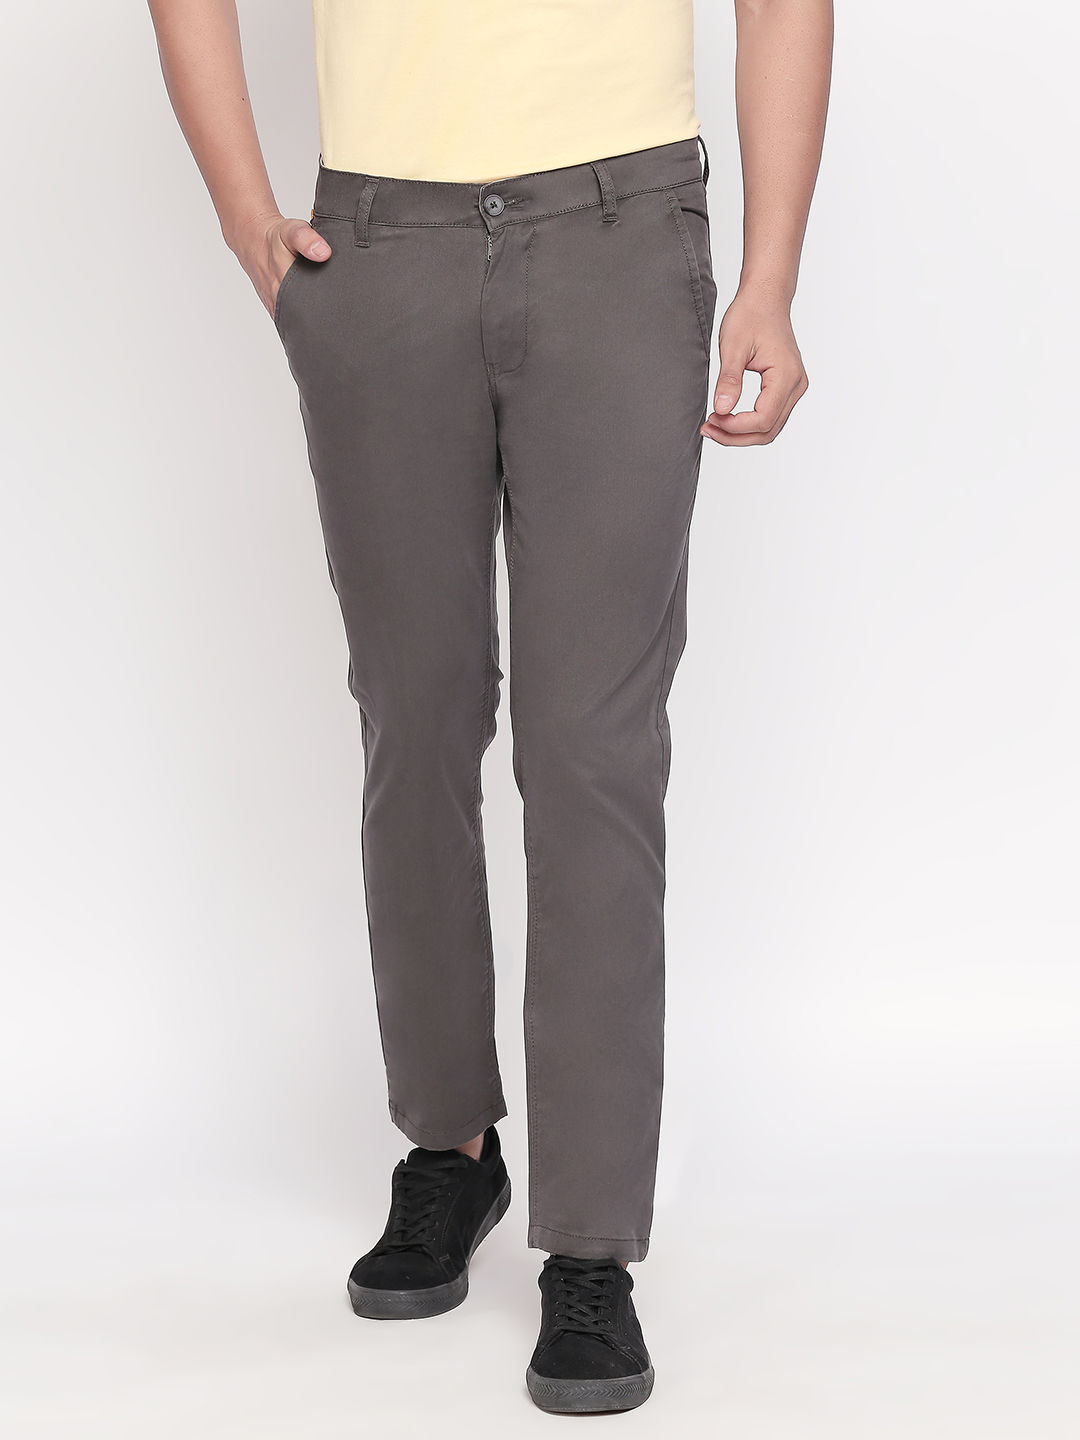 Charcoal Solid Slim Fit Chinos